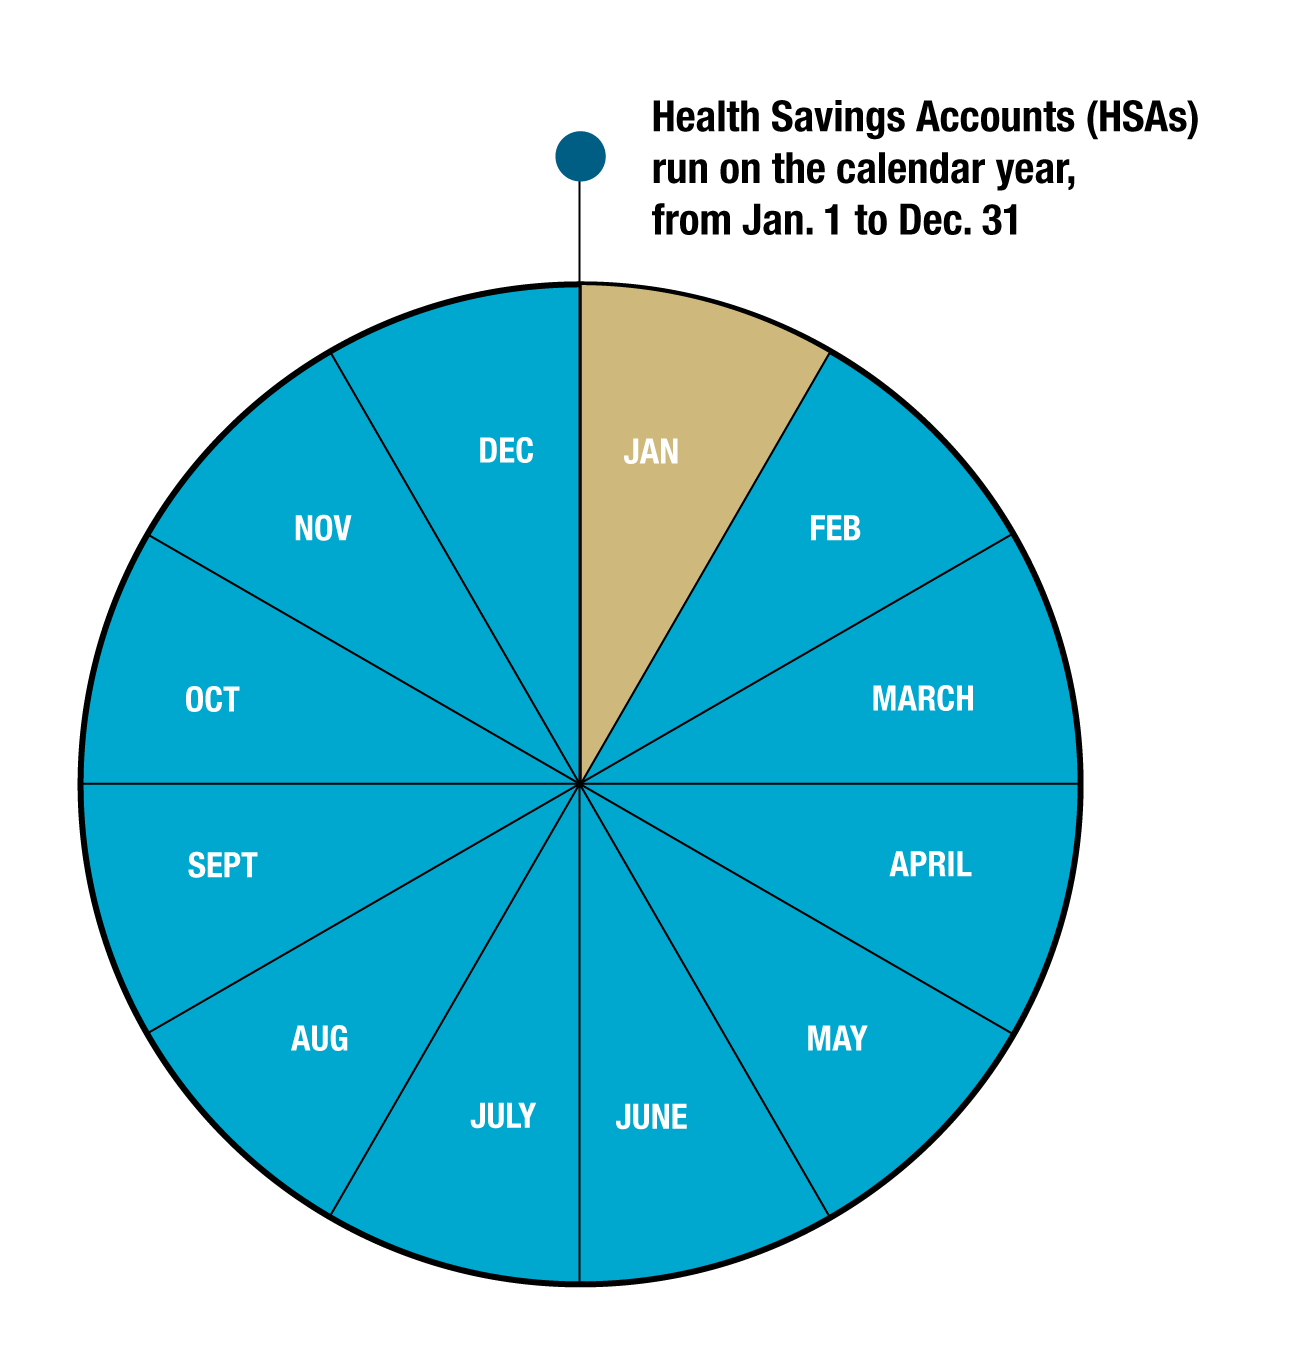 Health Savings Accounts (HSAs) run on the calendar year, from Jan. 1 to Dec. 31